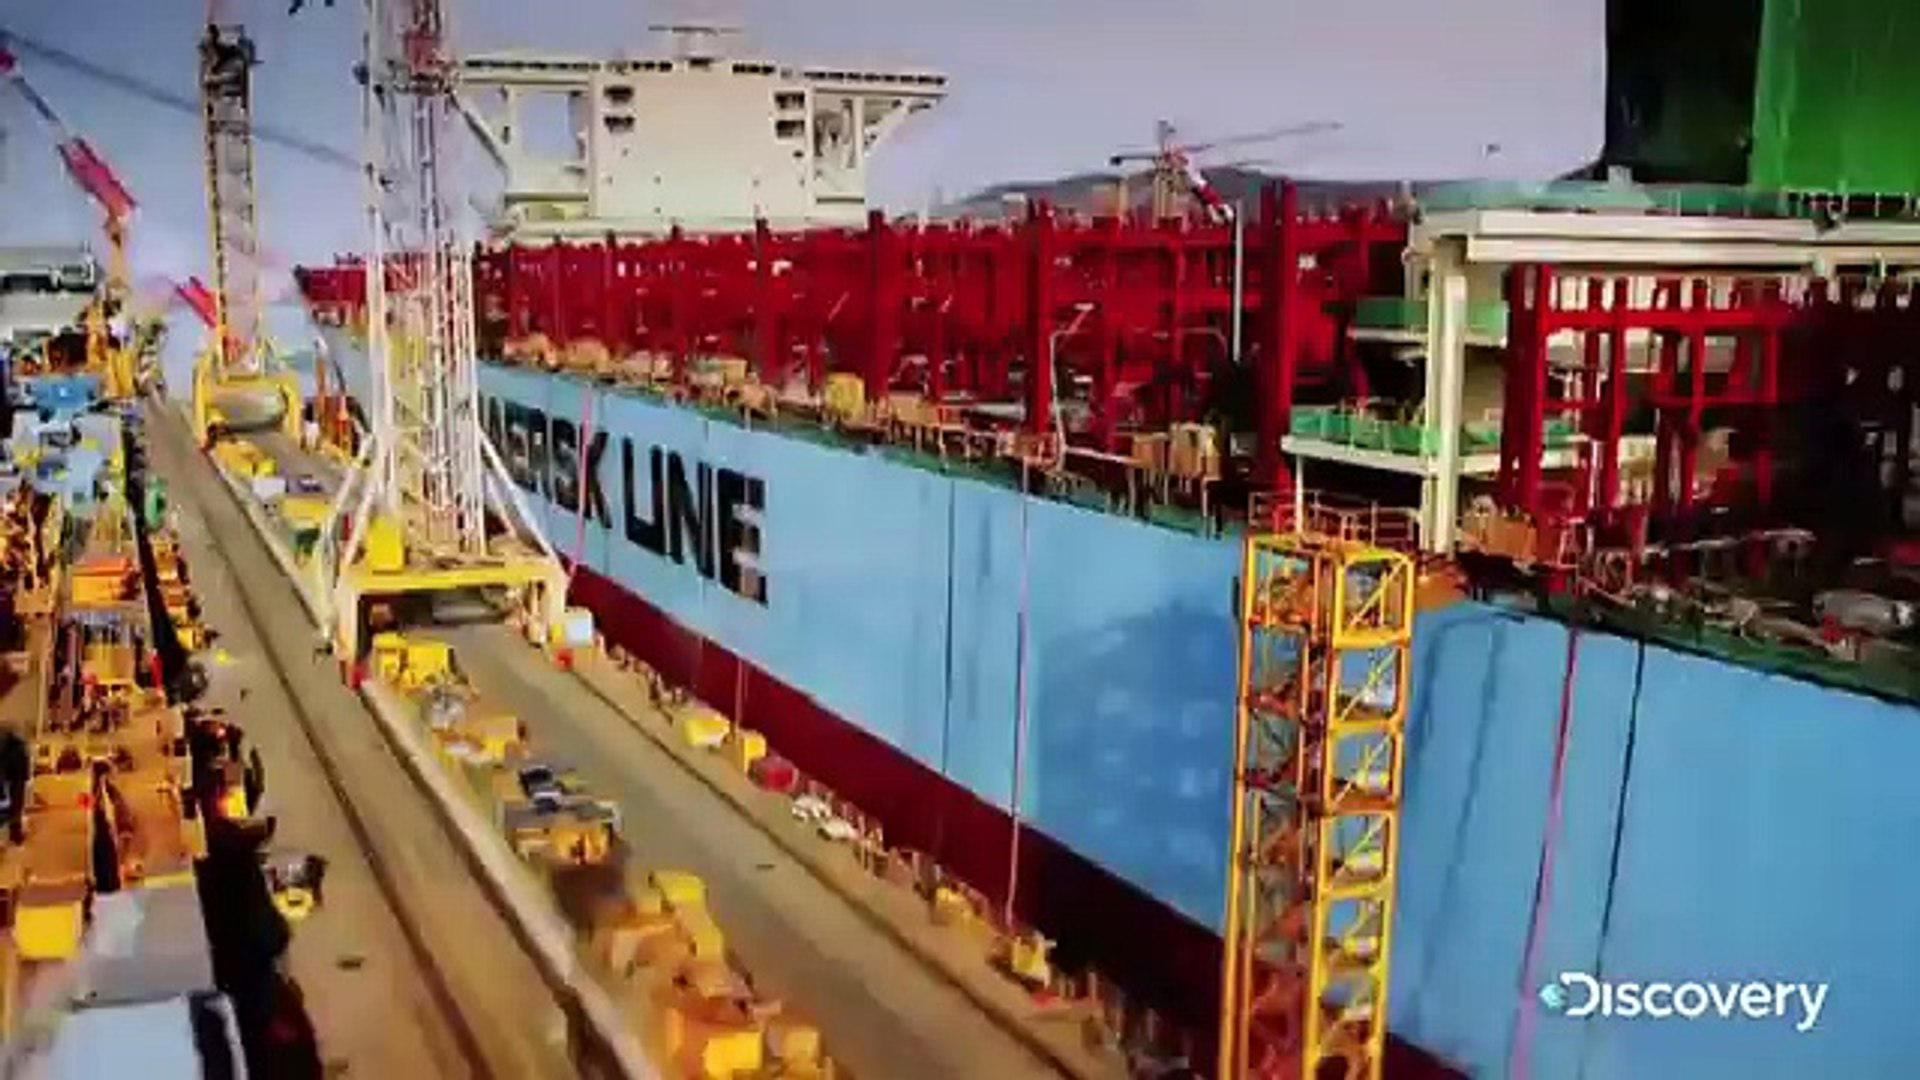 Discovery Channel 2015 |Discovery  World's Biggest Ship